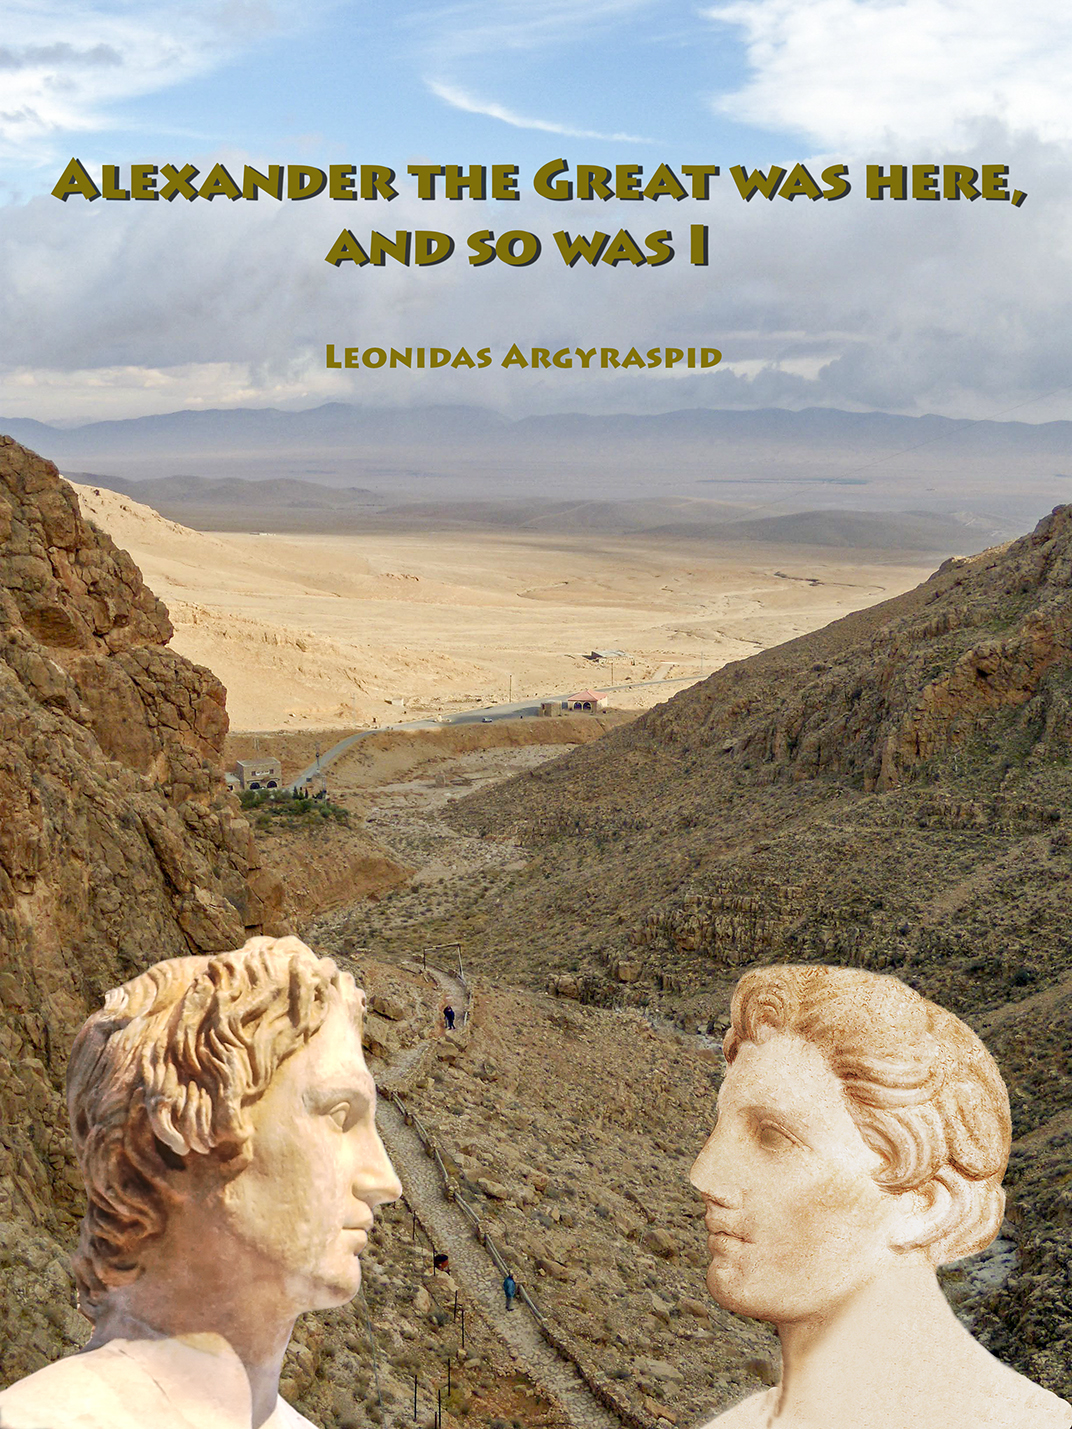 My own book about my travels in the wake of Alexander the Great